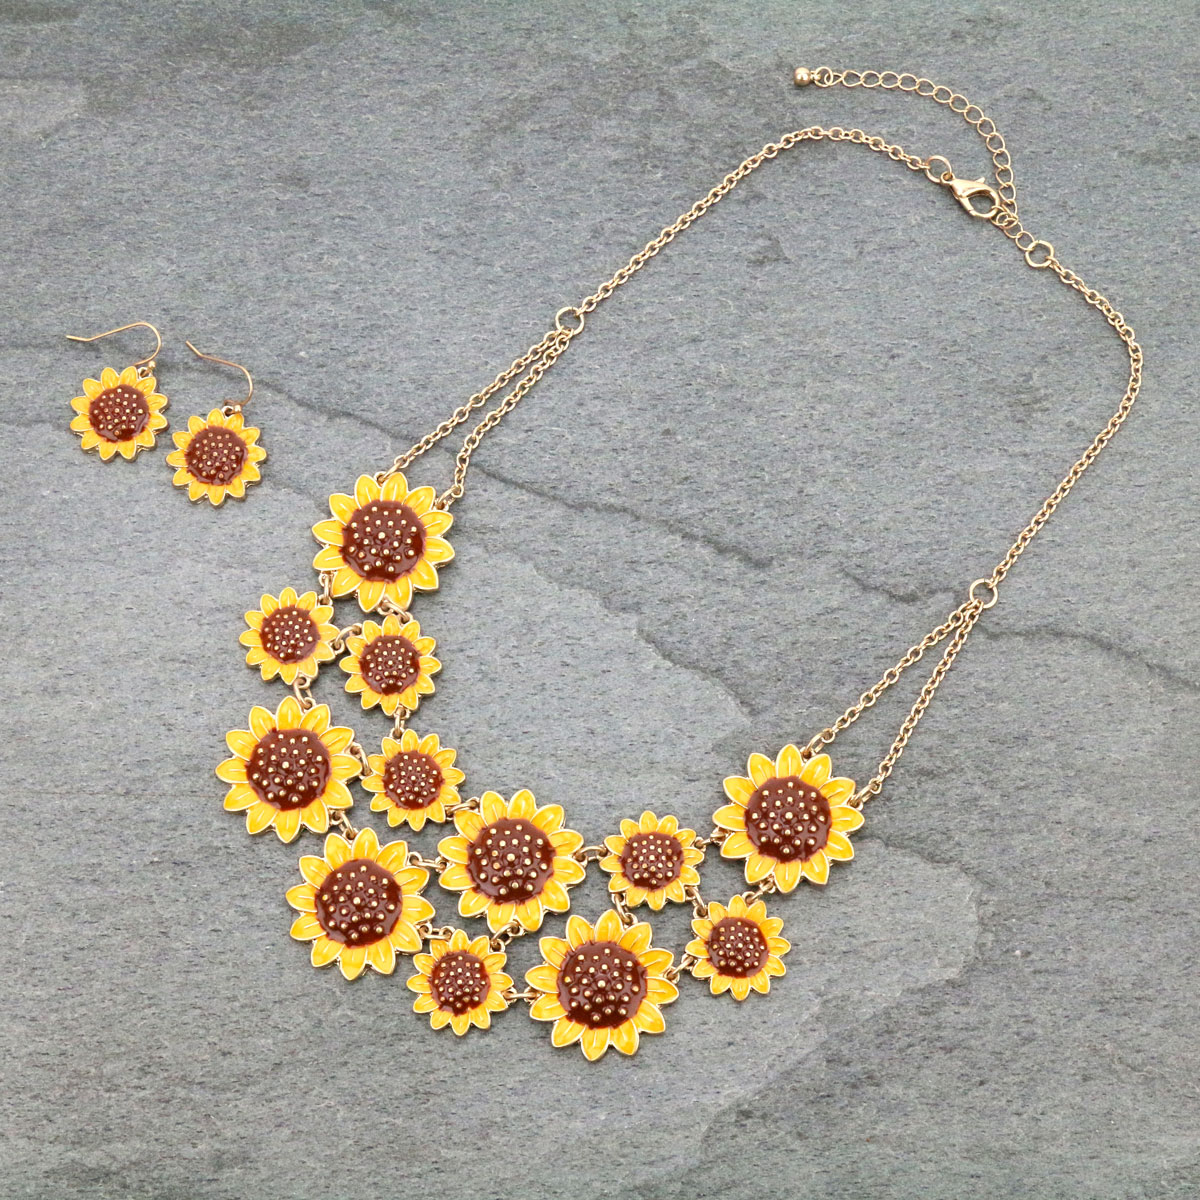 Sunflower Bib Style Necklace Set-SS1192/WGMUL